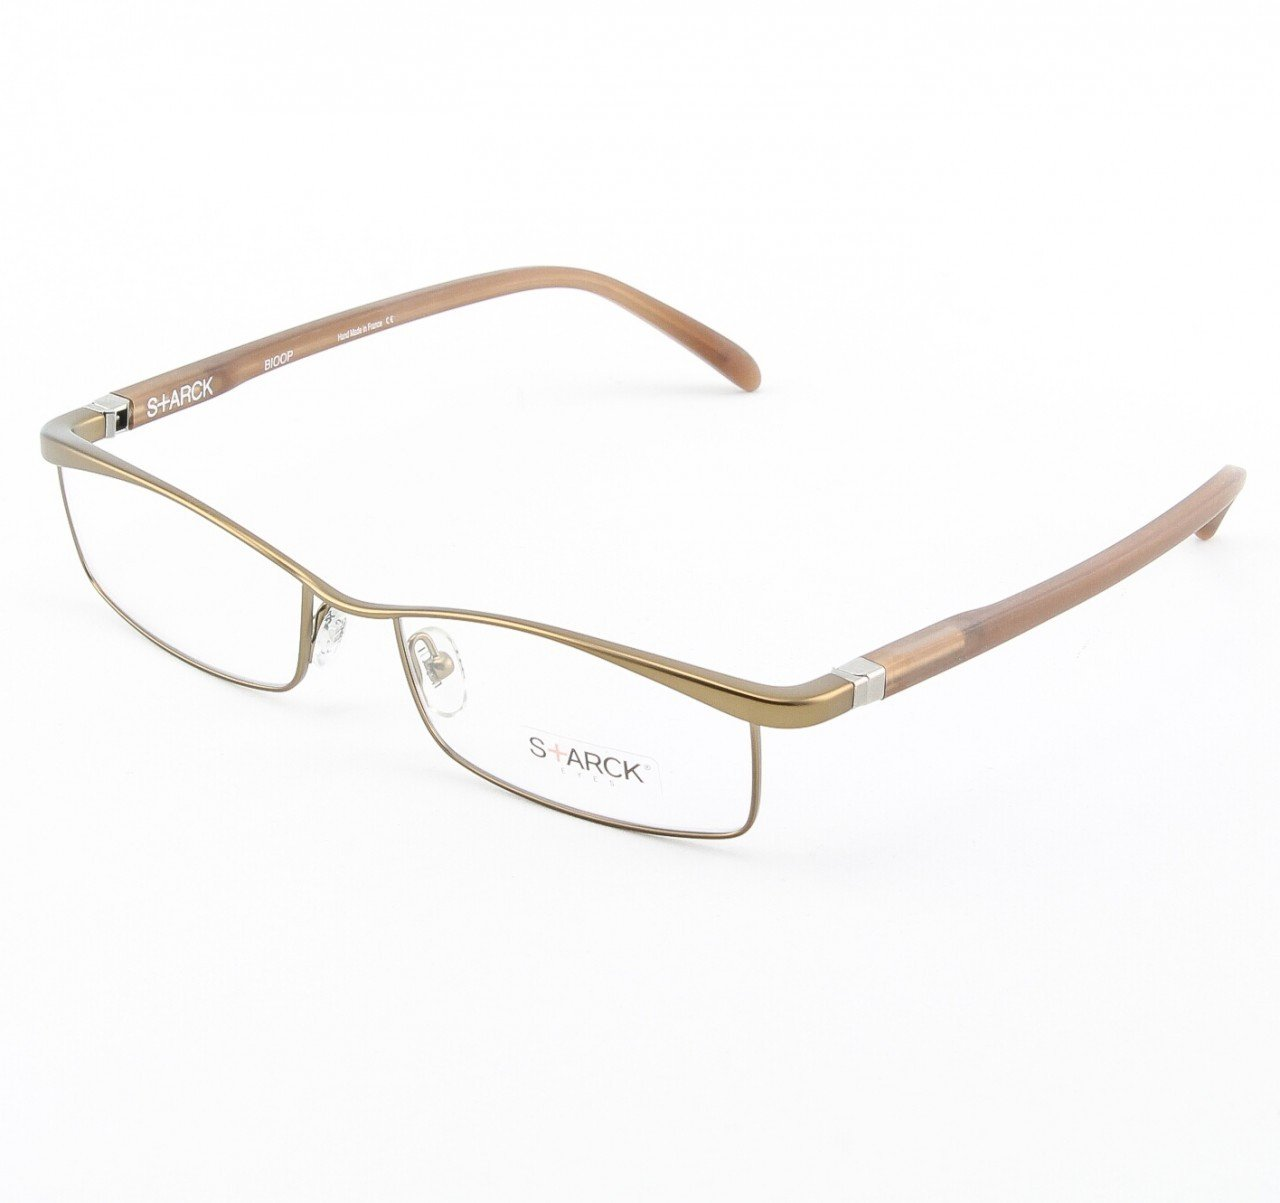 Starck Eyeglasses P0641 Col. 54 Bronze with Clear Lenses